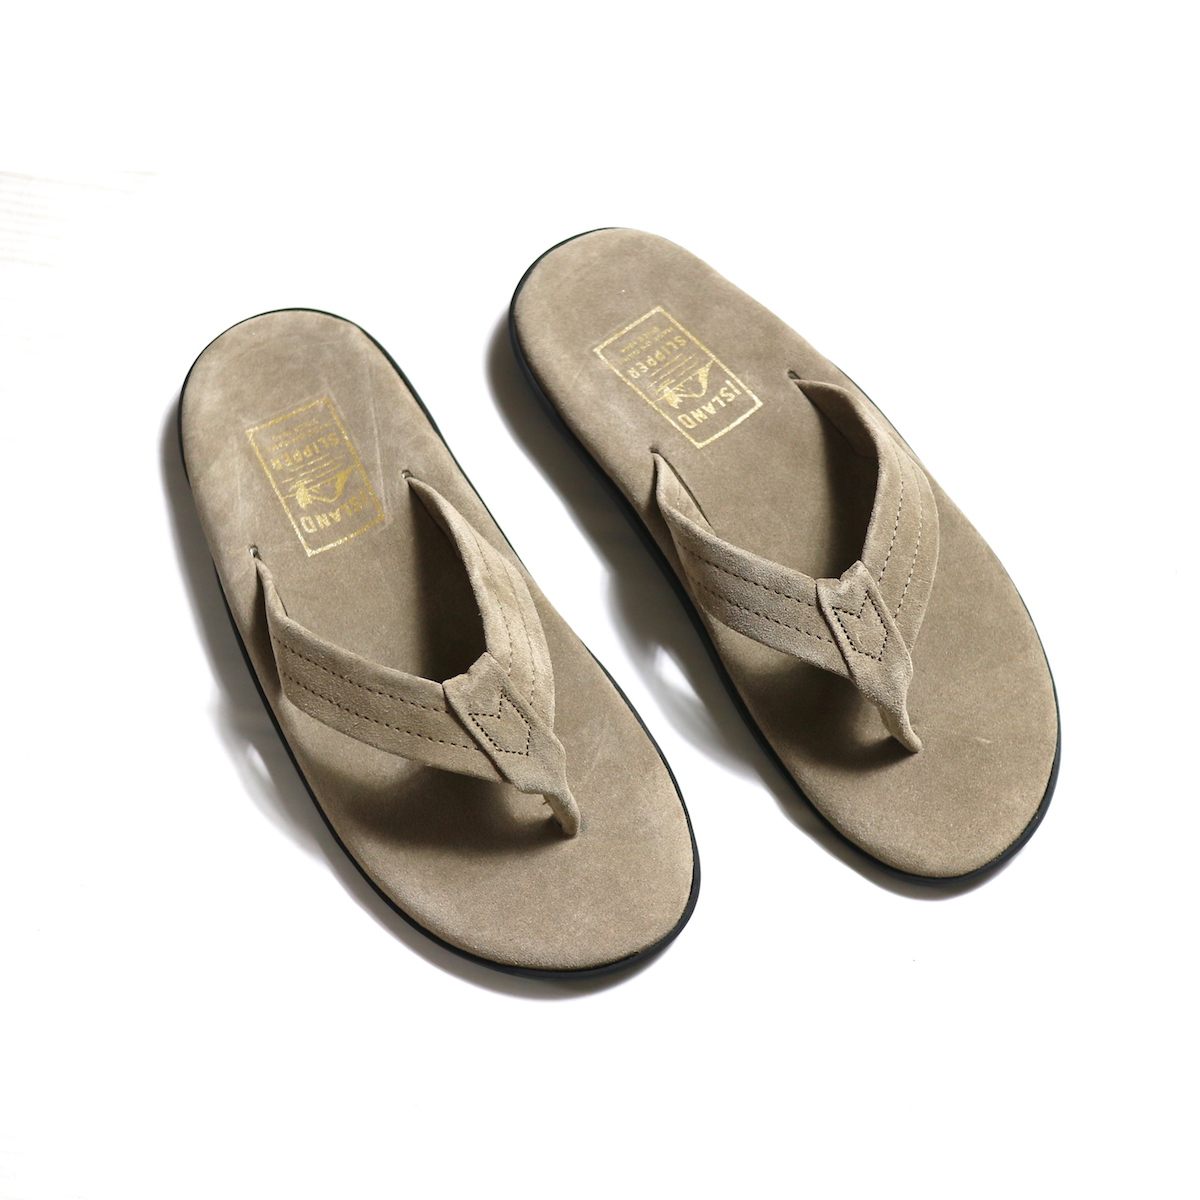 ISLAND SLIPPER / PB203 -ELEFANT